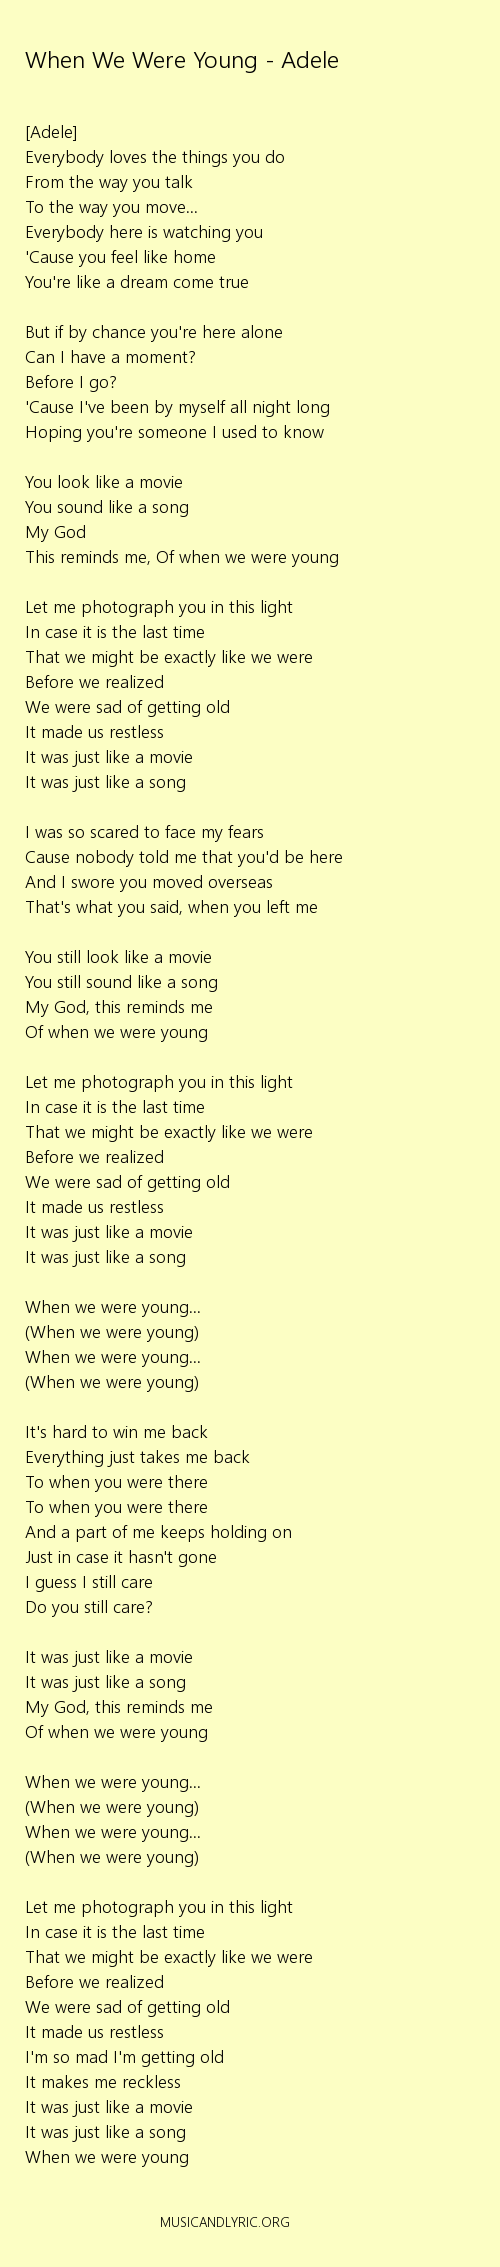 Adele when we were young lyrics pdf musicandlyrics adele adele when we were young lyrics pdf musicandlyrics hexwebz Image collections